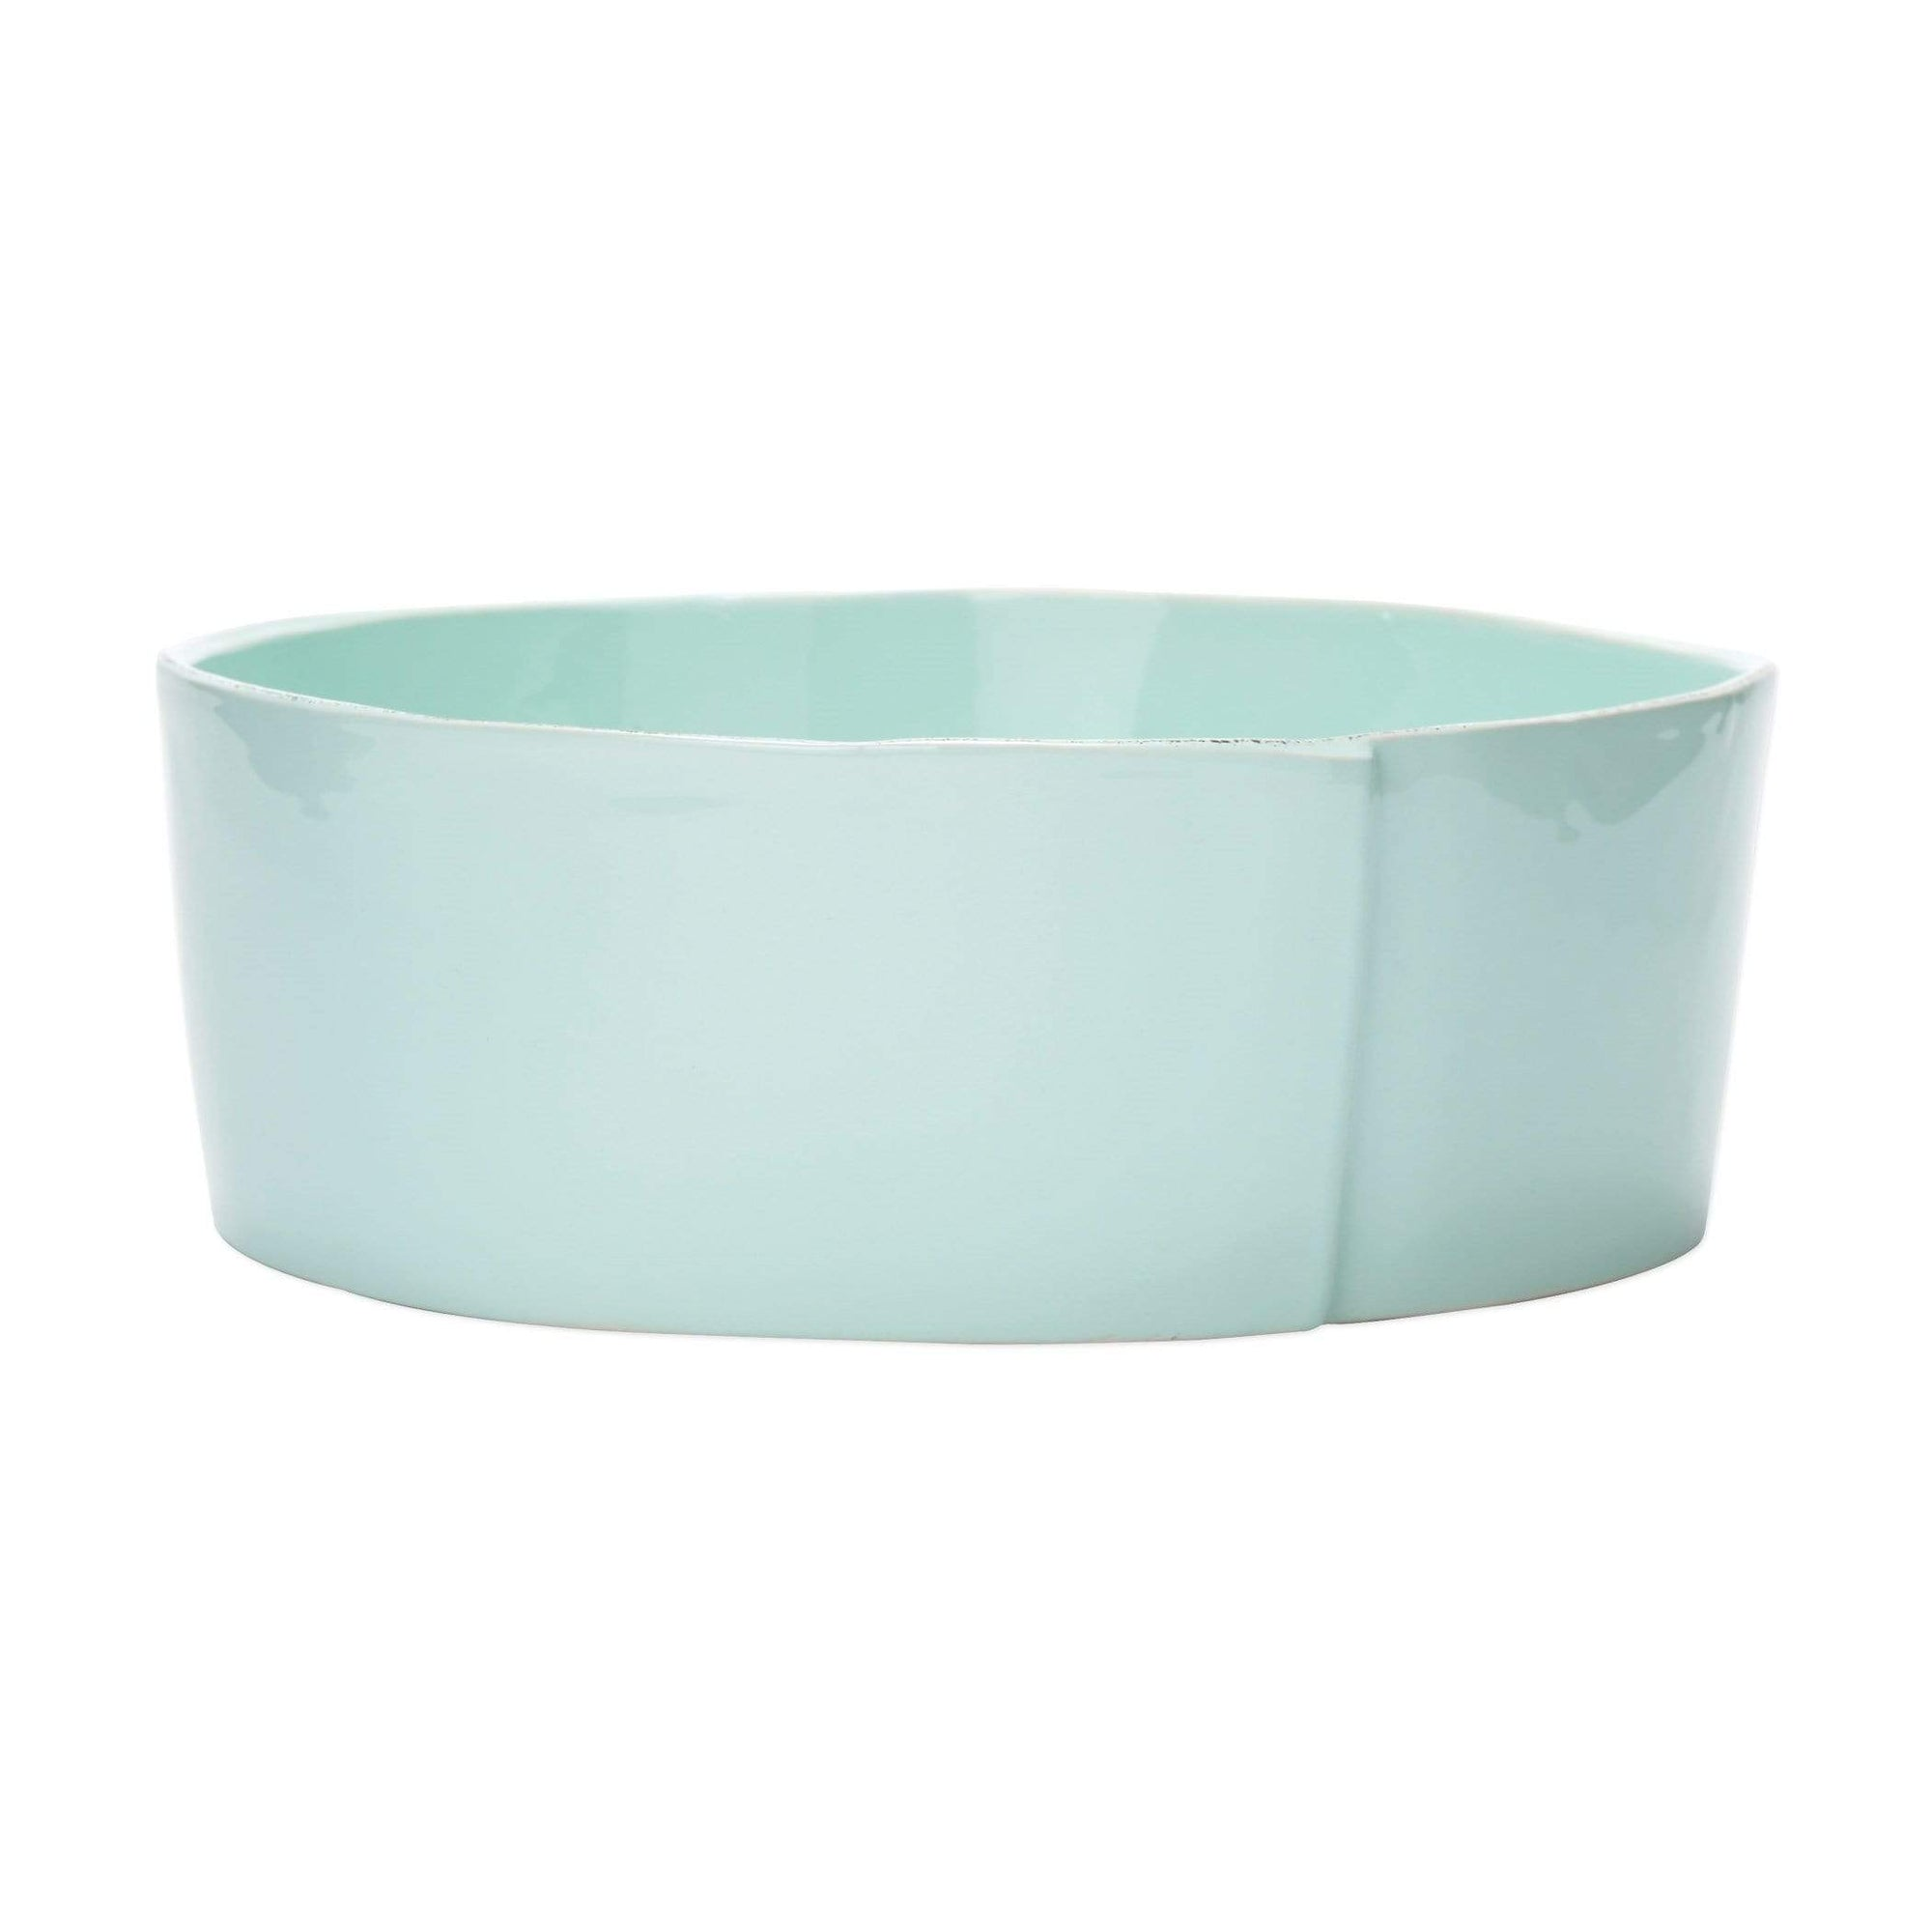 Vietri Vietri Lastra Large Serving Bowls - Available in 6 Colors White LAS-2632W